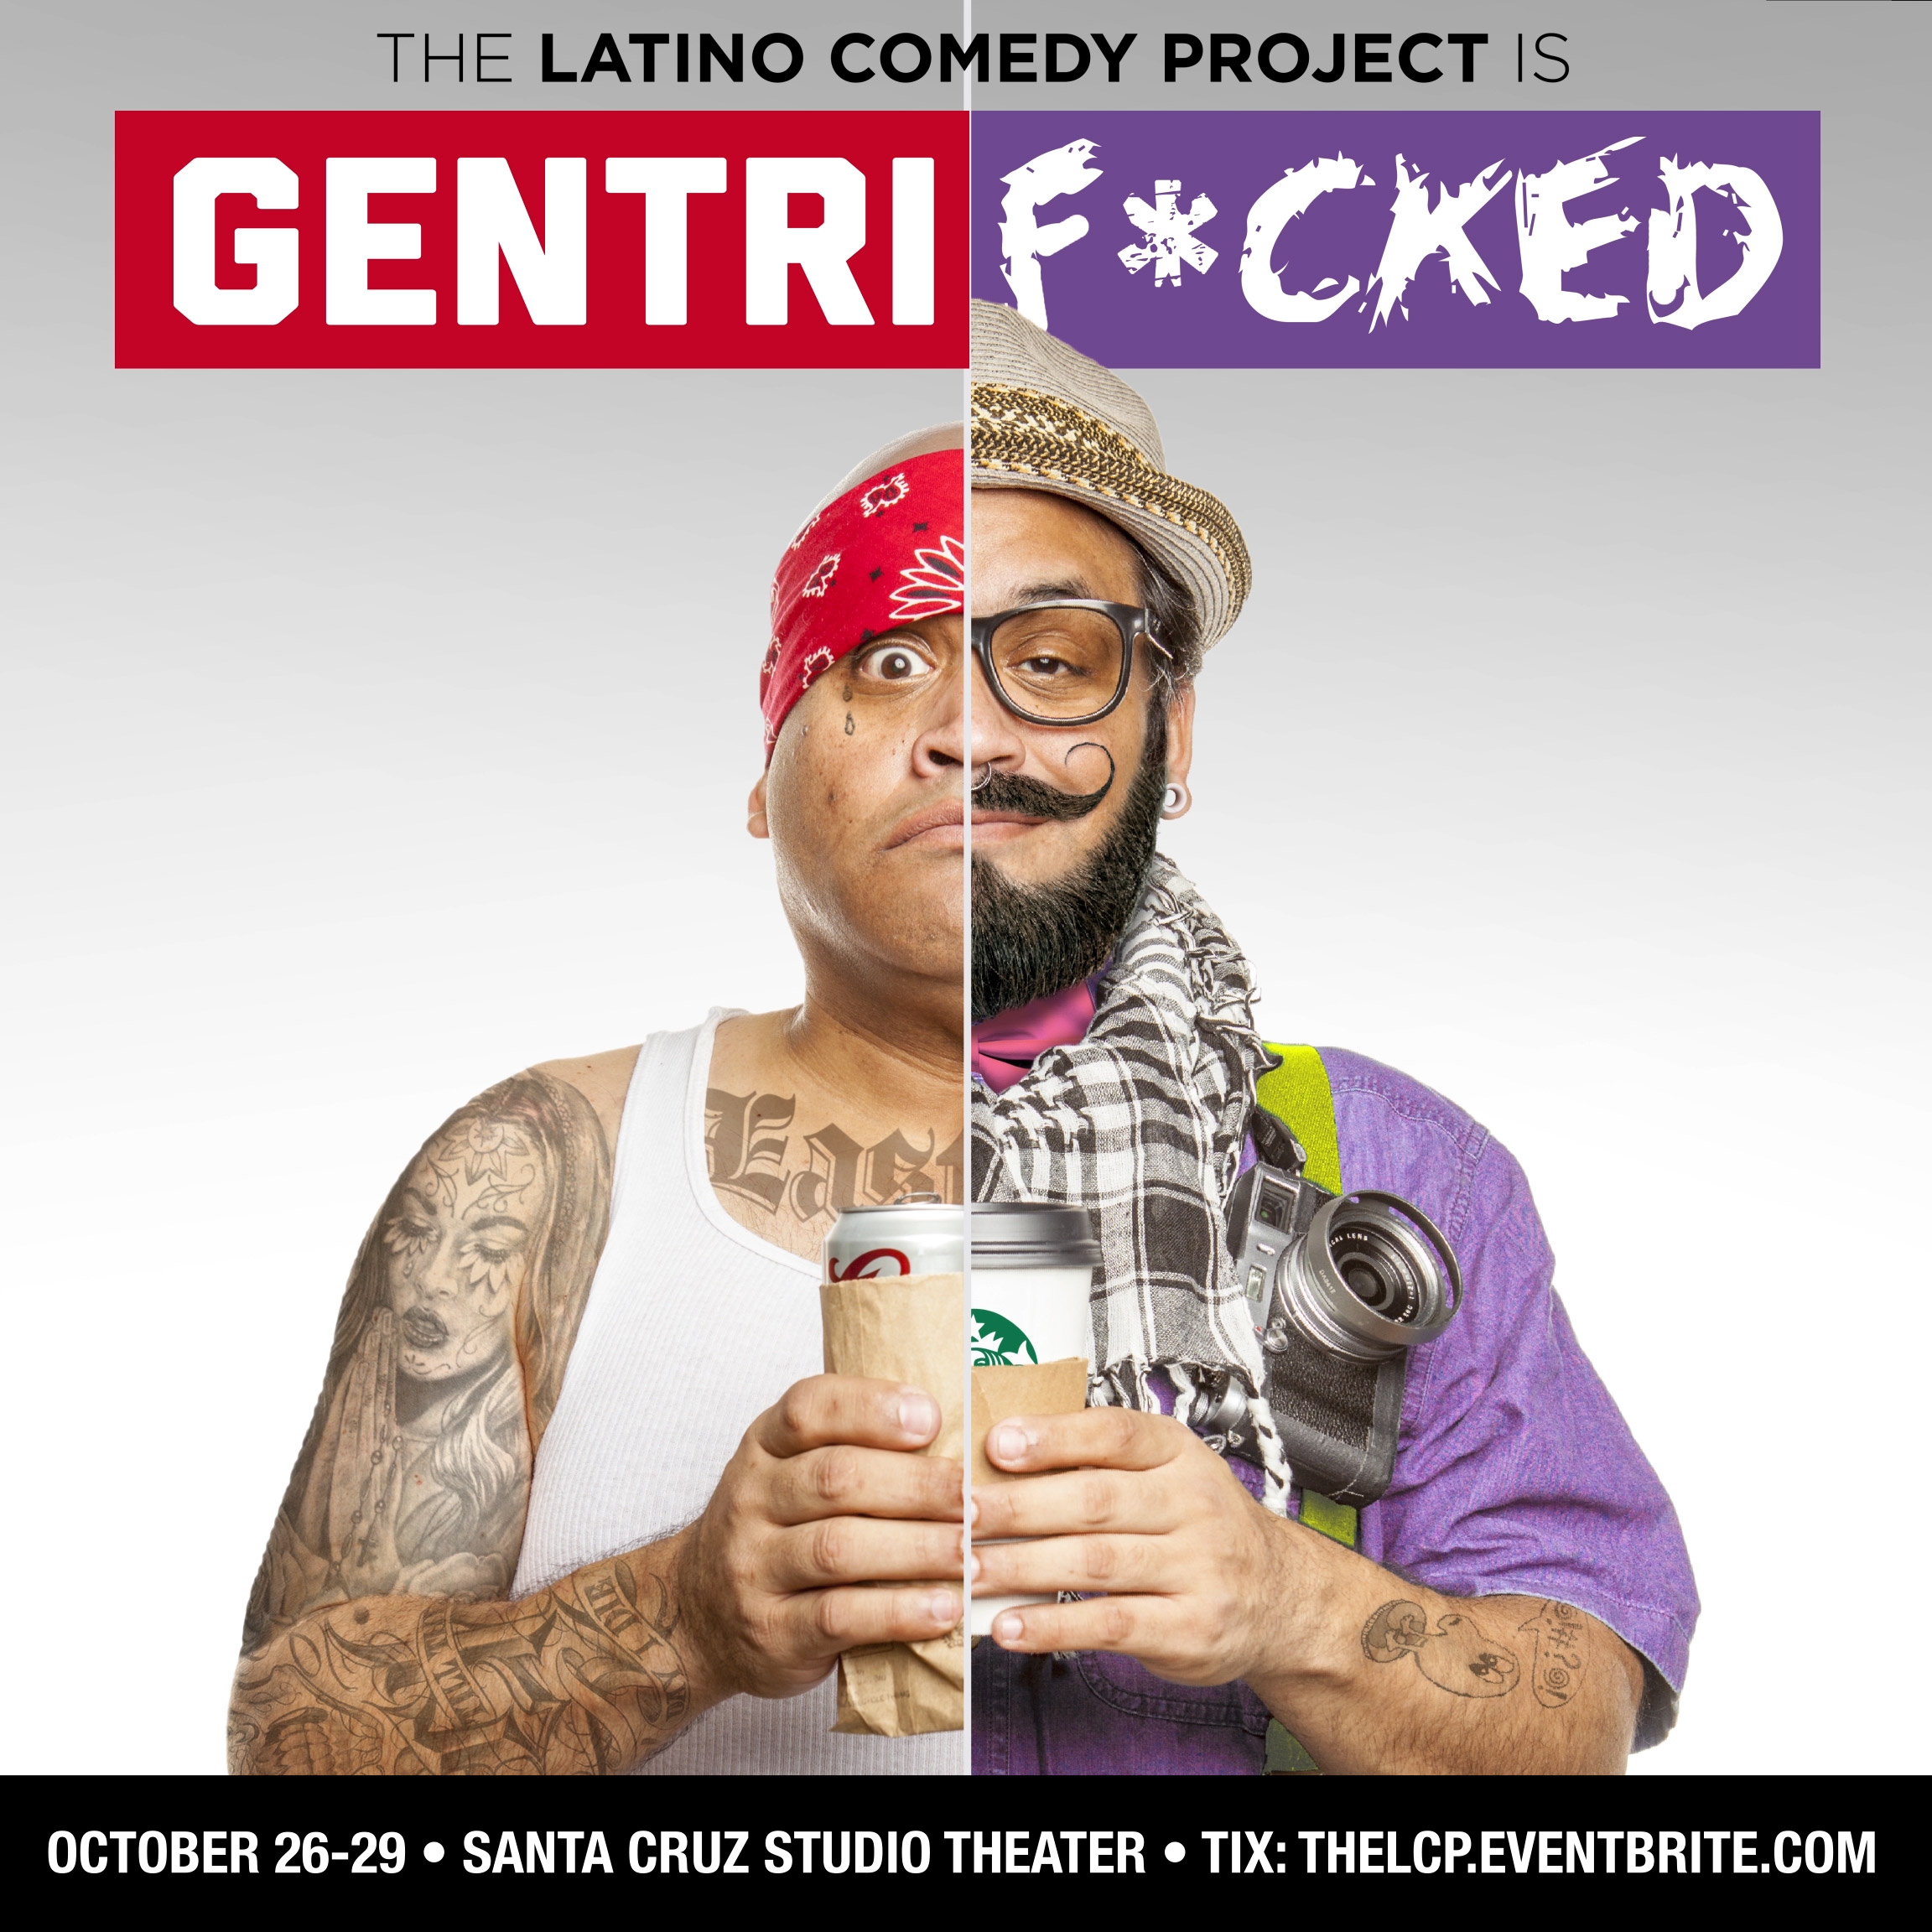 Latino Comedy Project